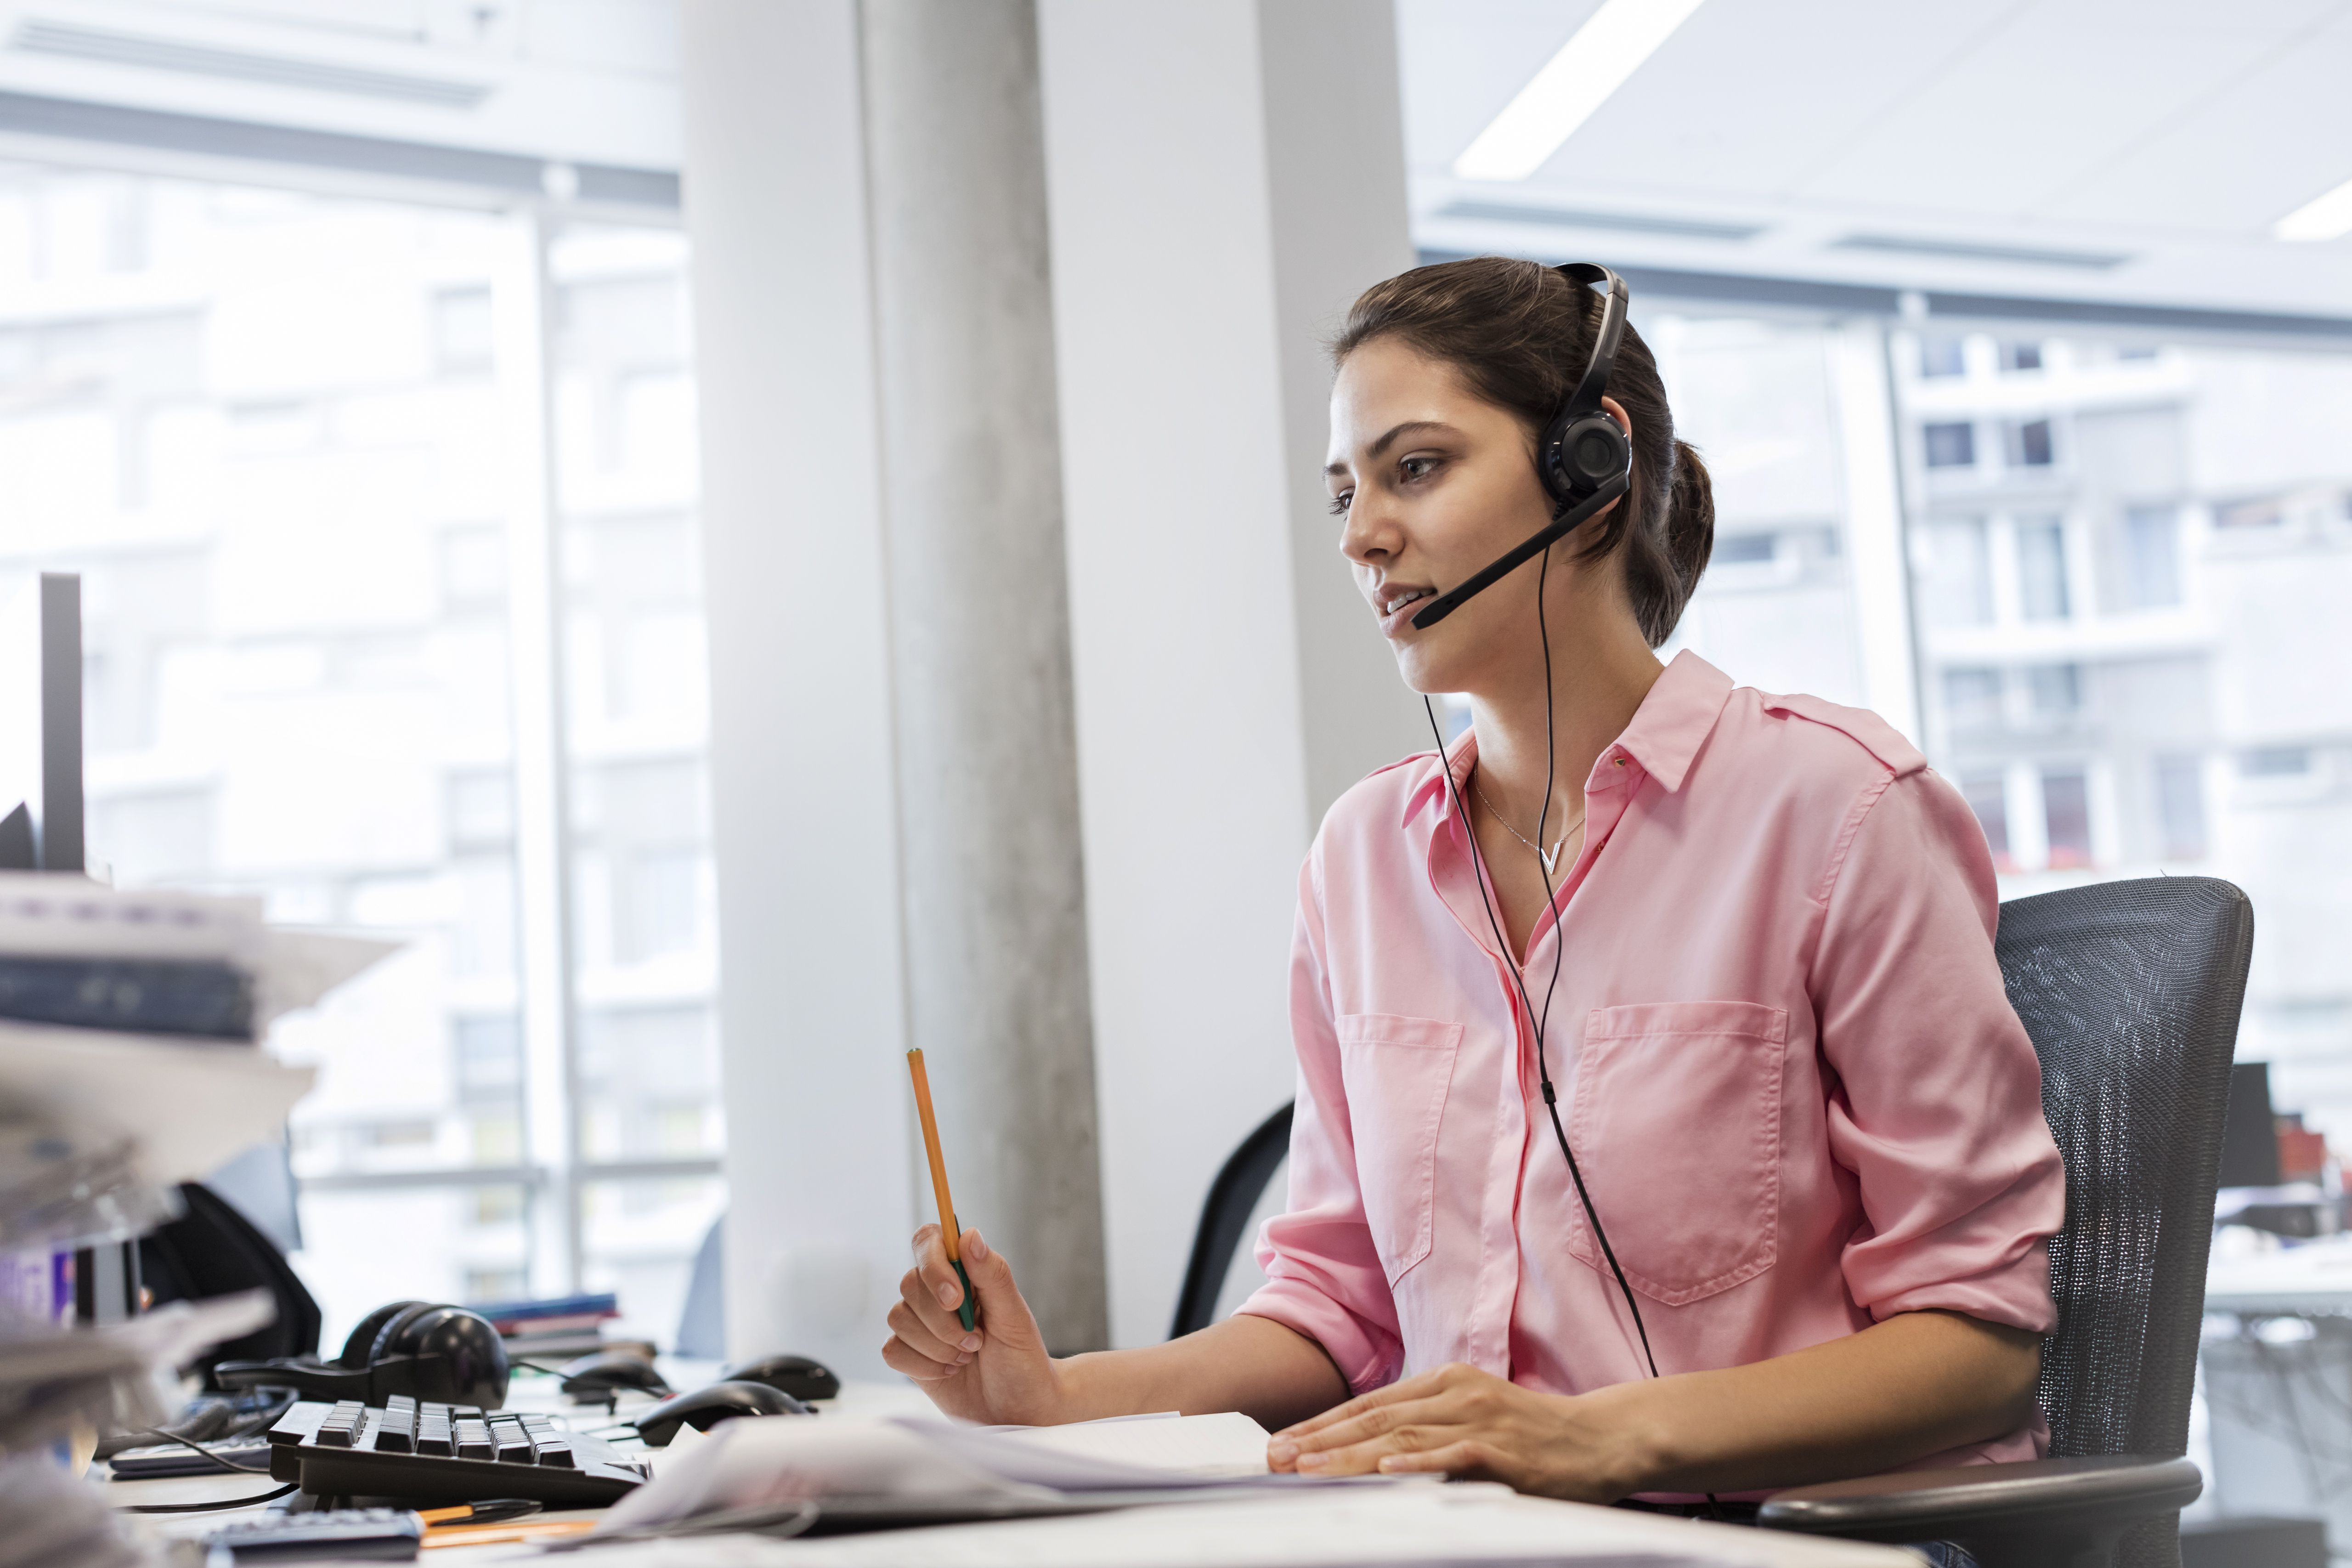 Woman with hands-free device talking on telephone in call center